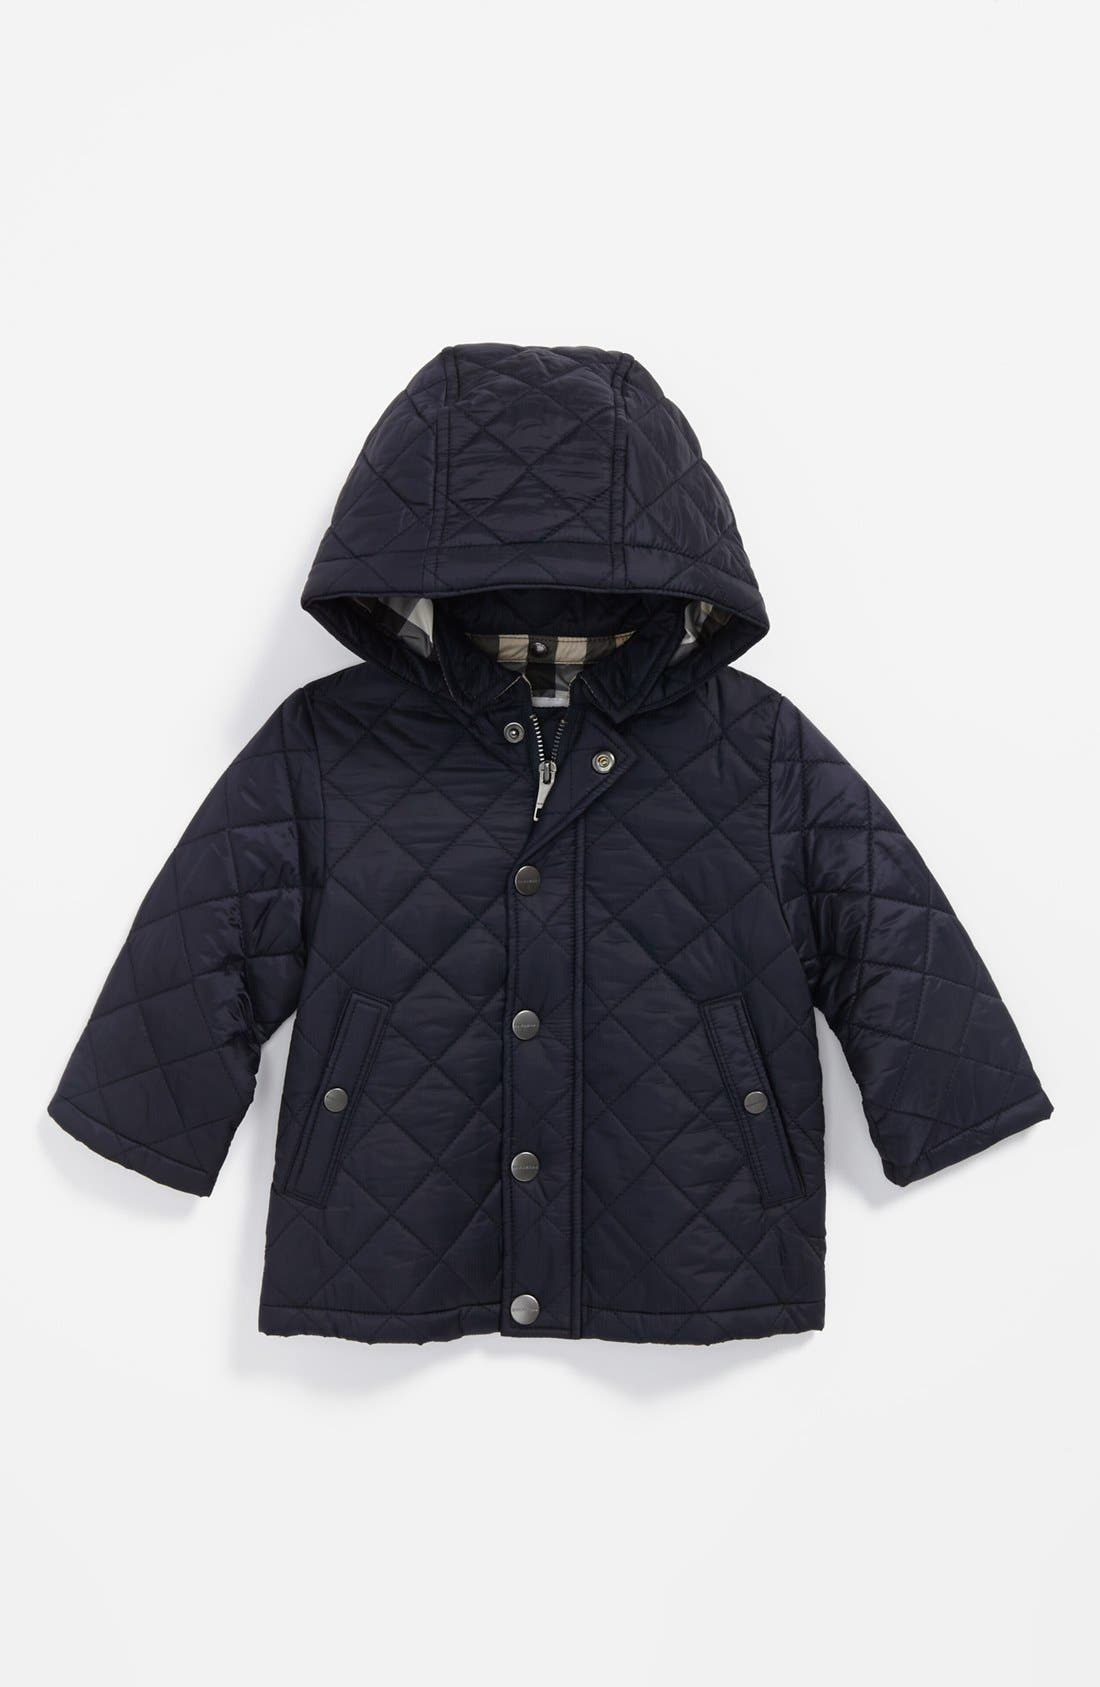 Main Image - Burberry 'Jerry' Quilted Jacket (Toddler Boys)